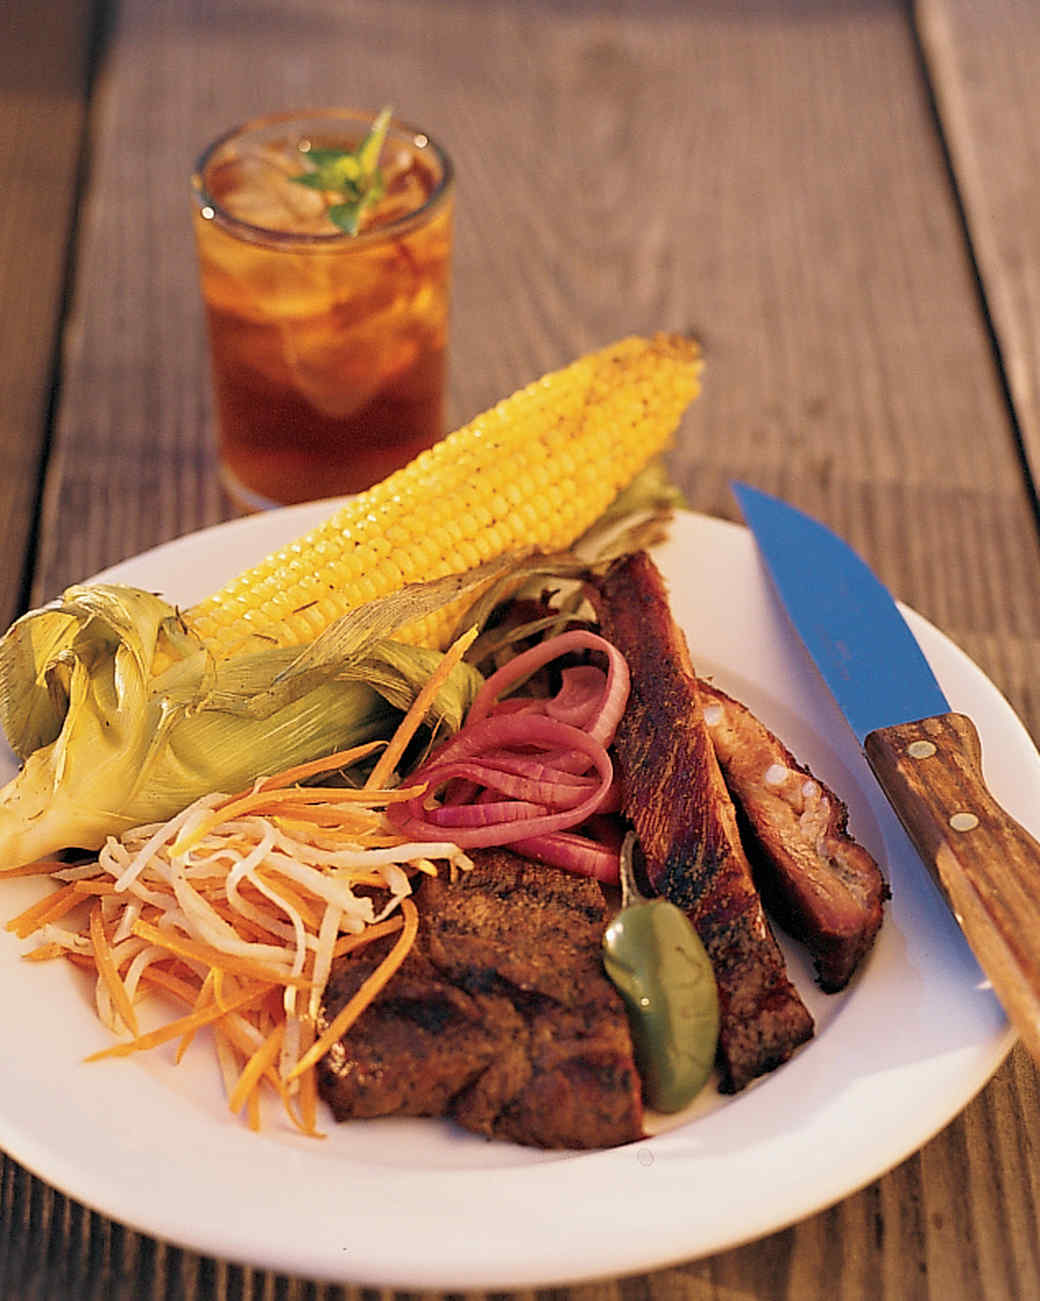 Barbecued Pork Ribs with Maple Rub